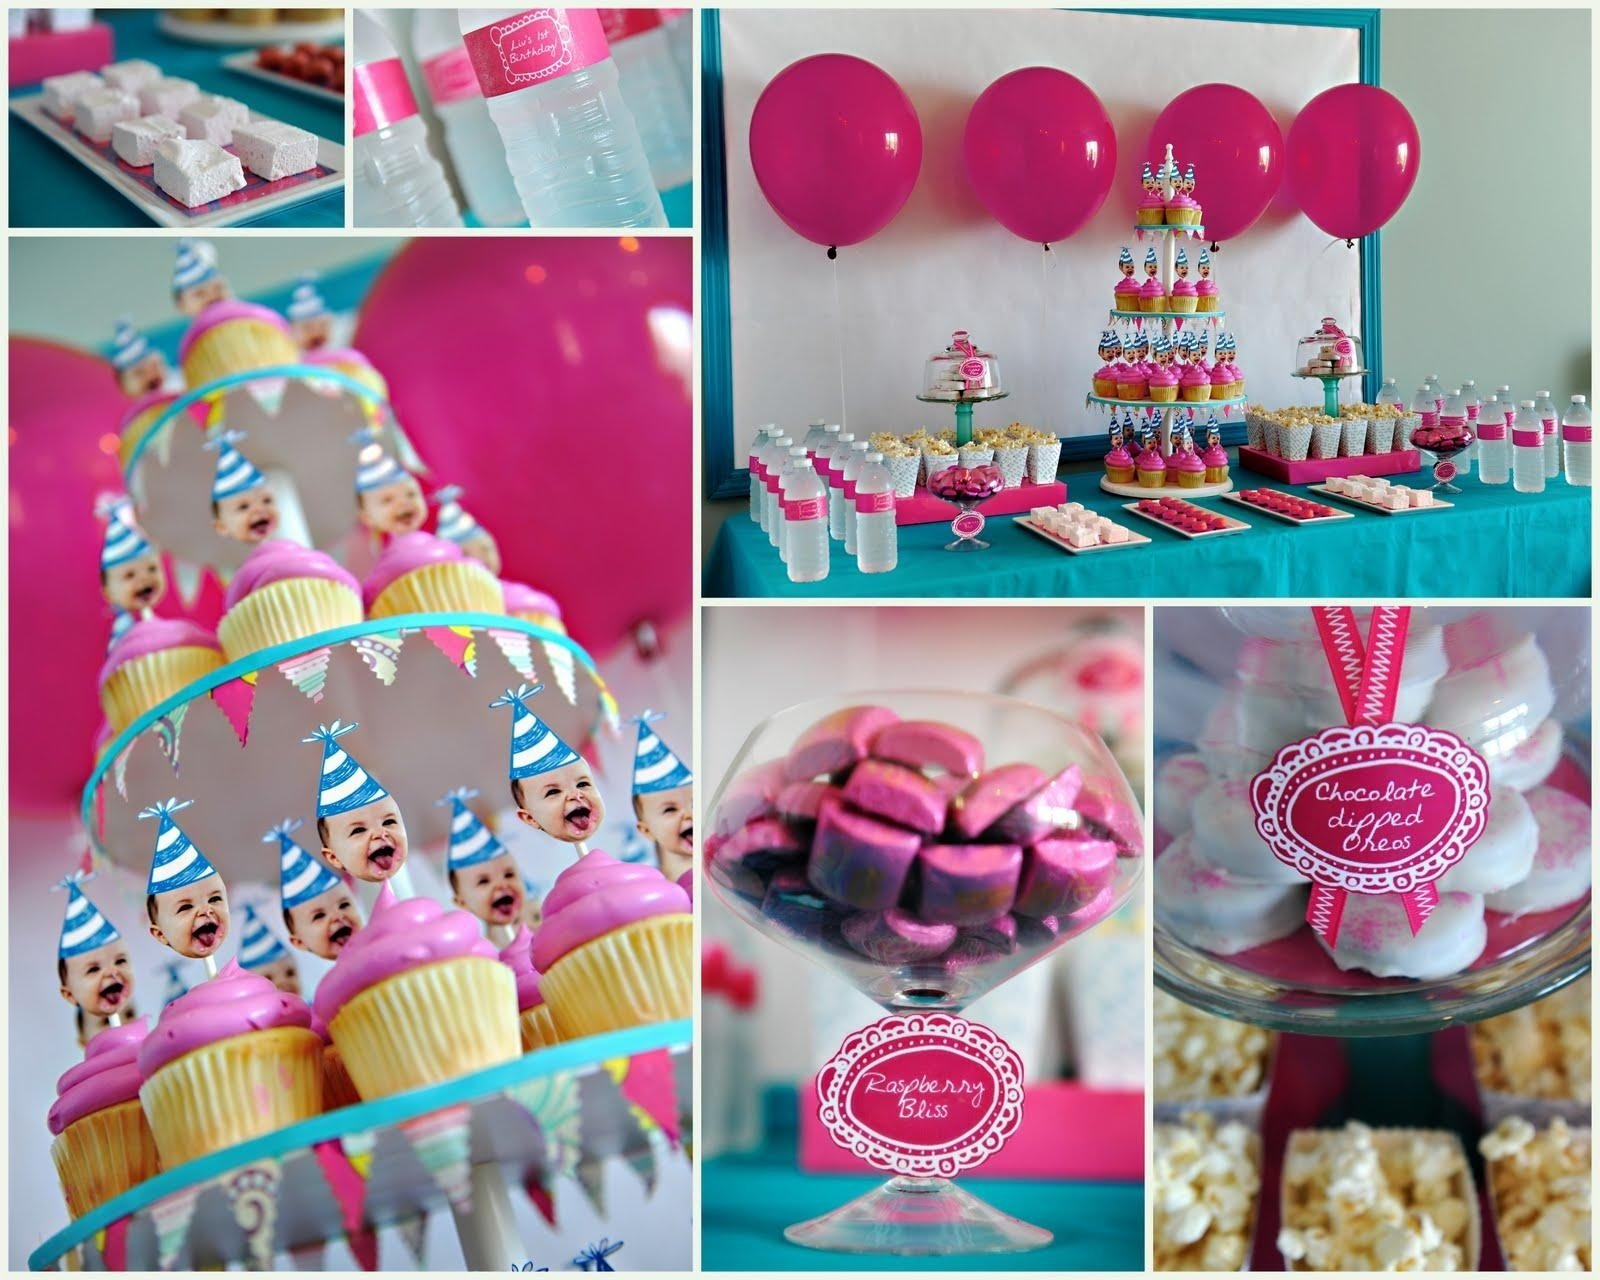 10 Famous Birthday Party Ideas For Girls Age 9 best of birthday party ideas for girls age 9 wall maxx 1